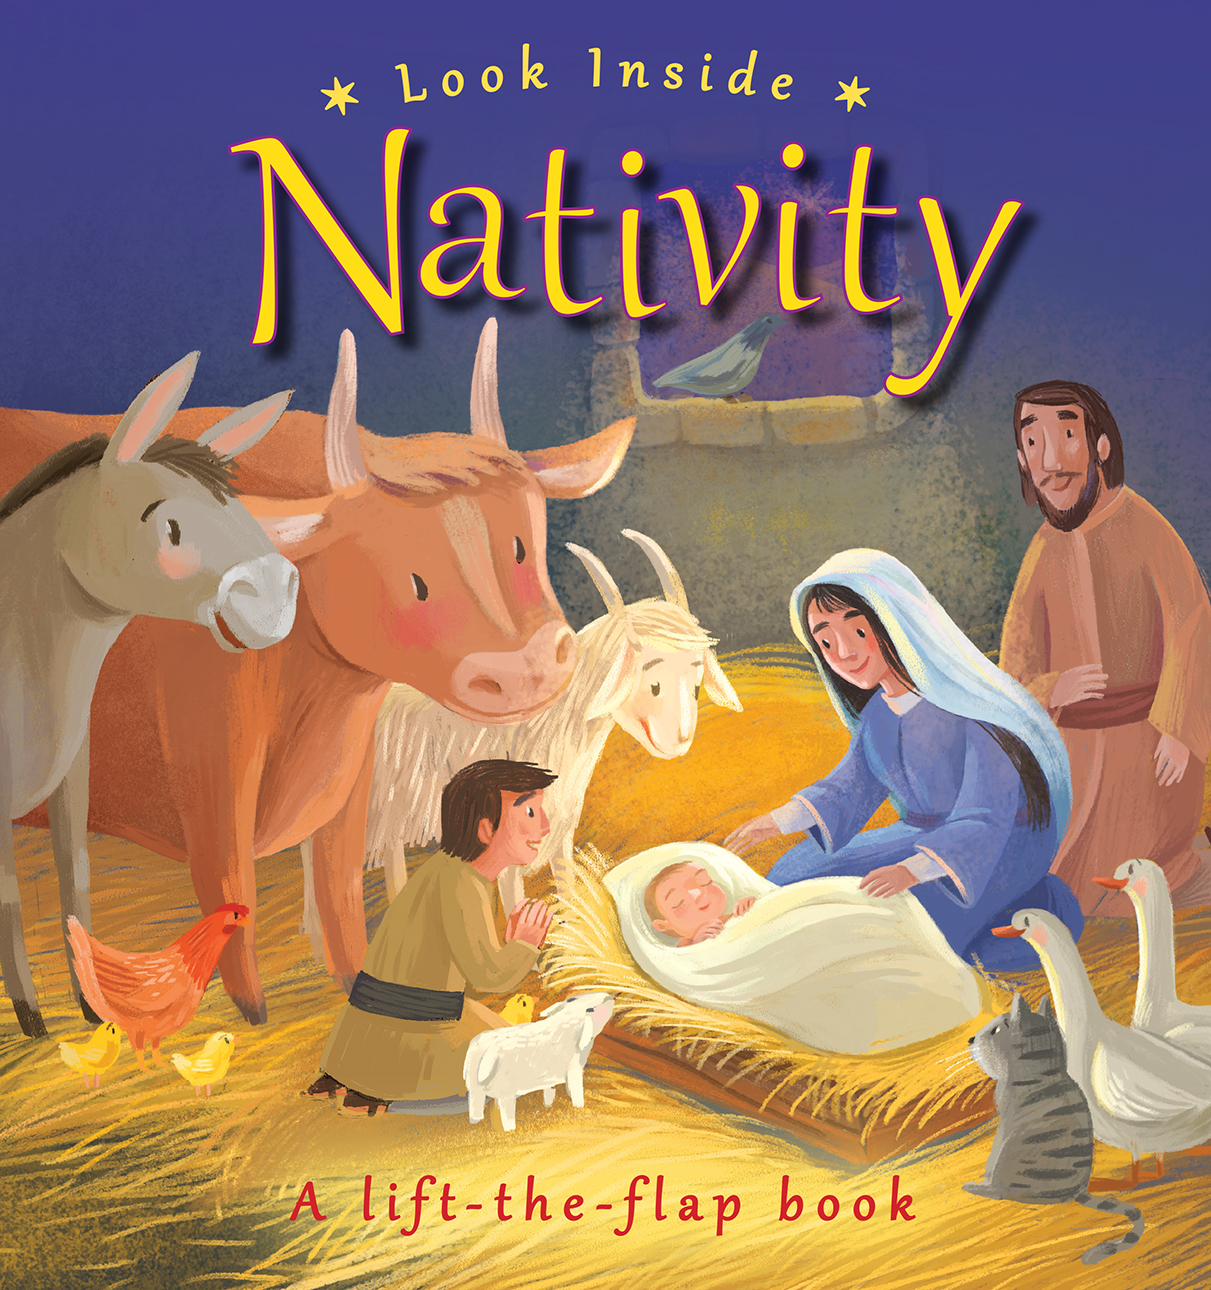 Look Inside Nativity